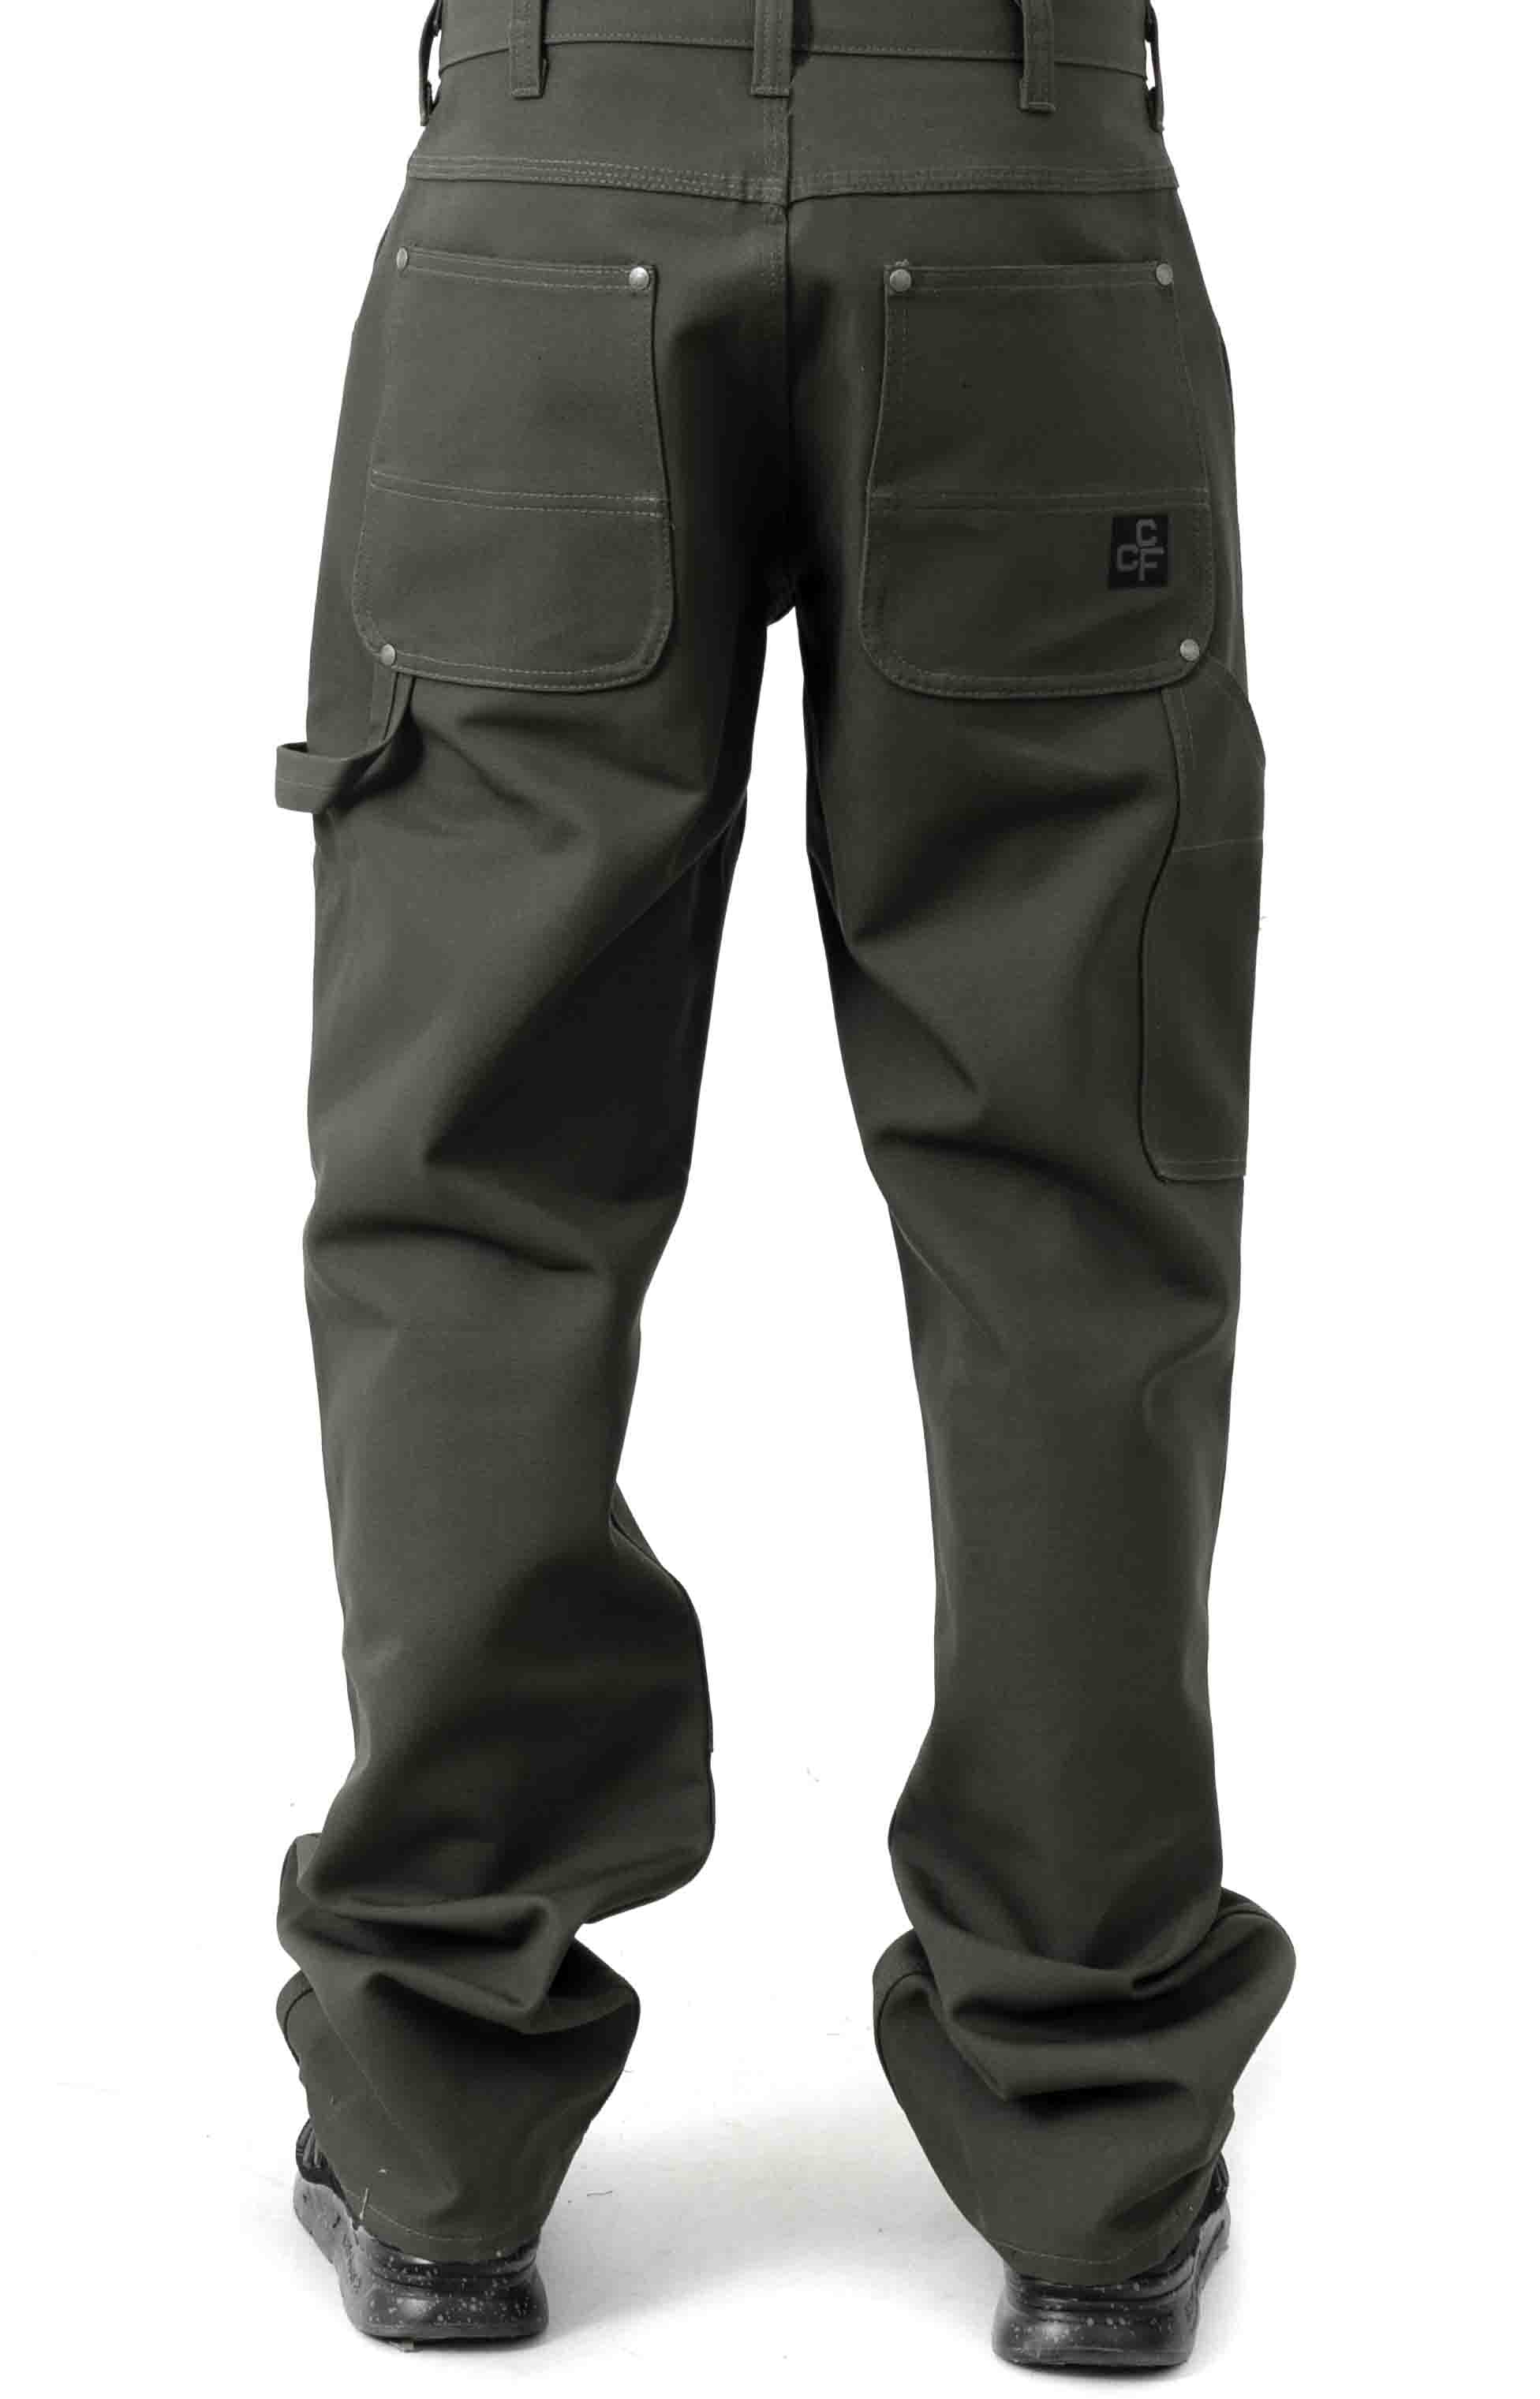 C.C.F. Utility Canvas Pant - Cannonball Green  3